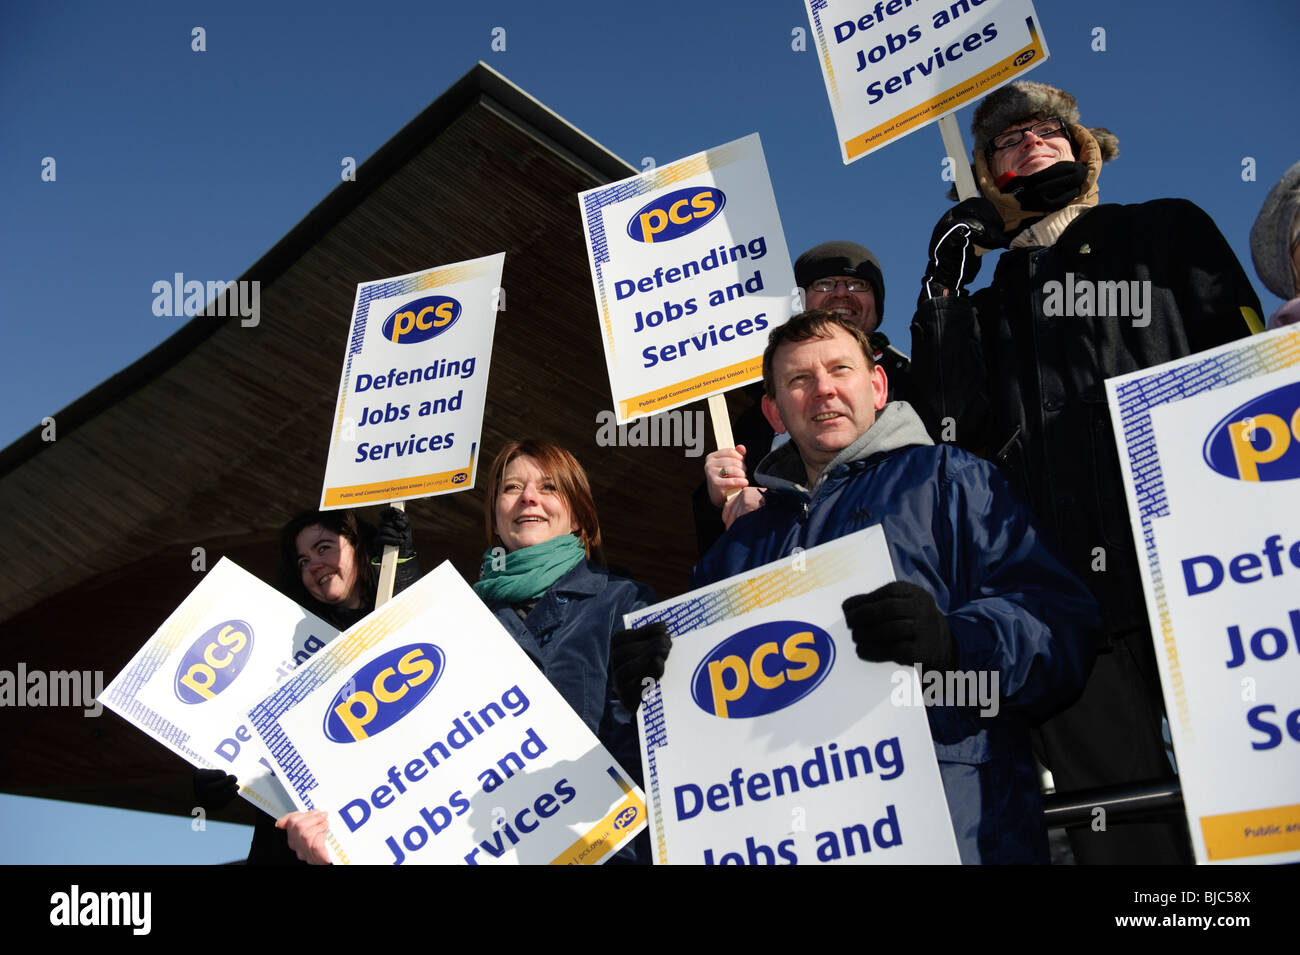 PCS [Public and Commercial Services] union members on strike, picketing Wales Assembly Govenment offices, Cardiff, - Stock Image